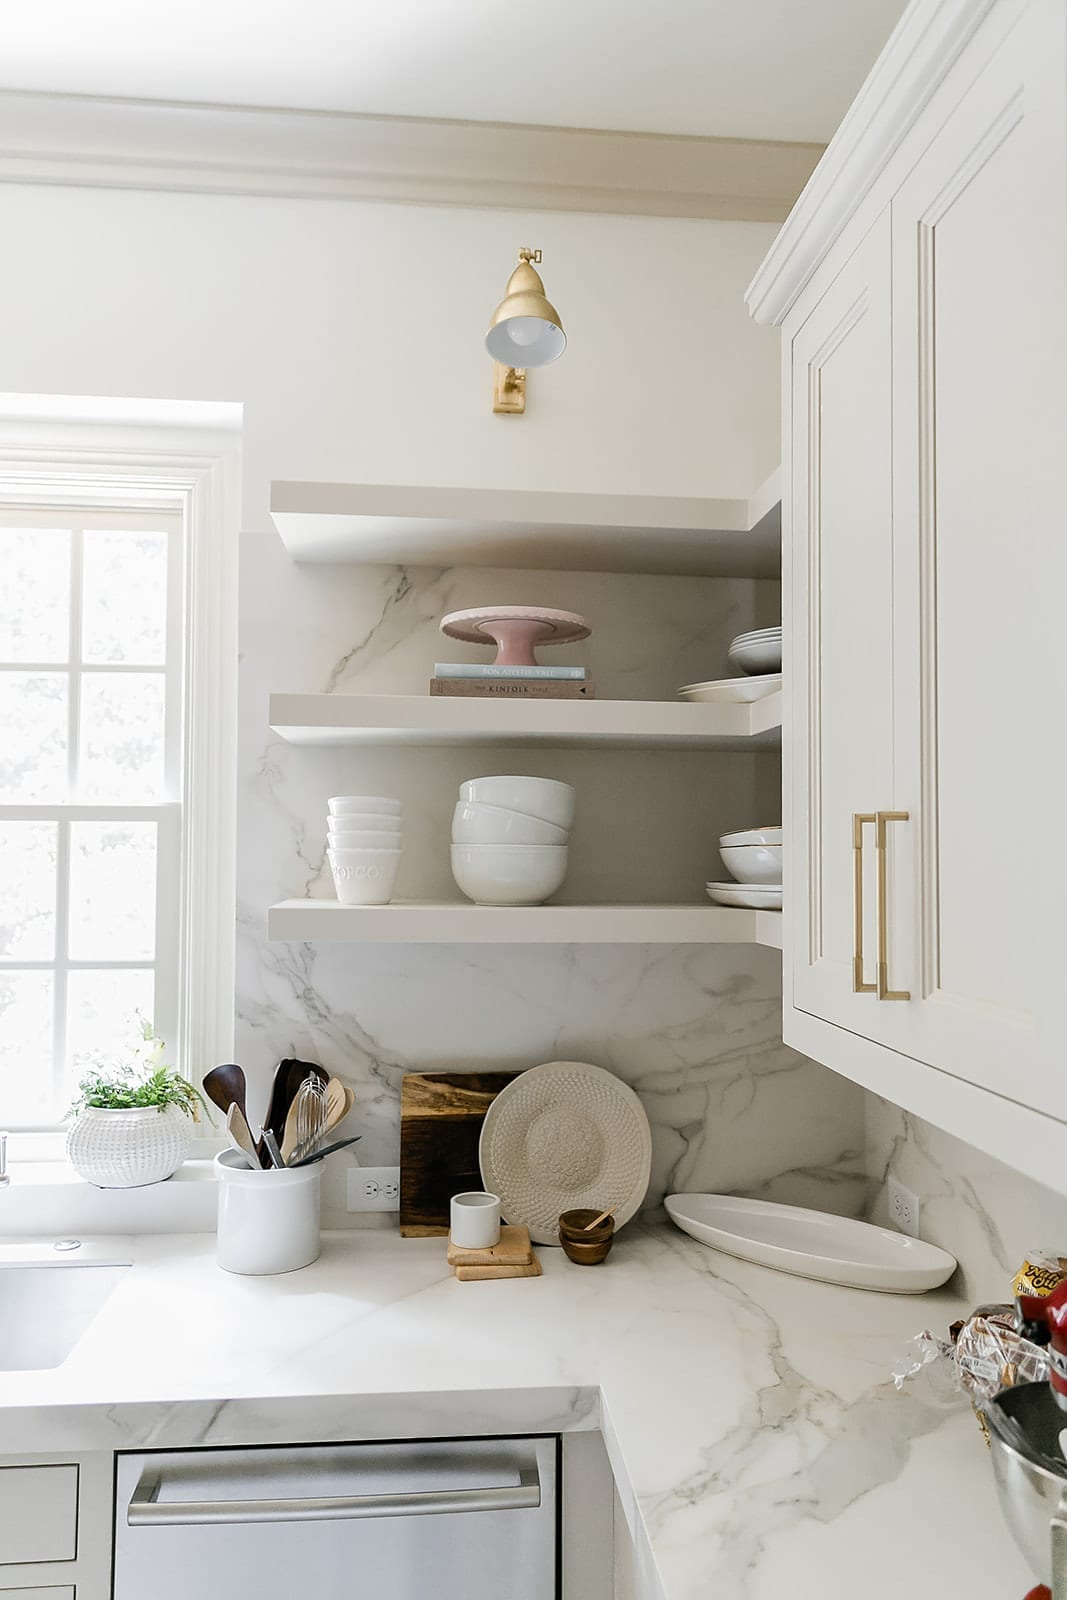 Floating Shelves in kitchen painted in Accessible beige with gold light and porcelain countertops.